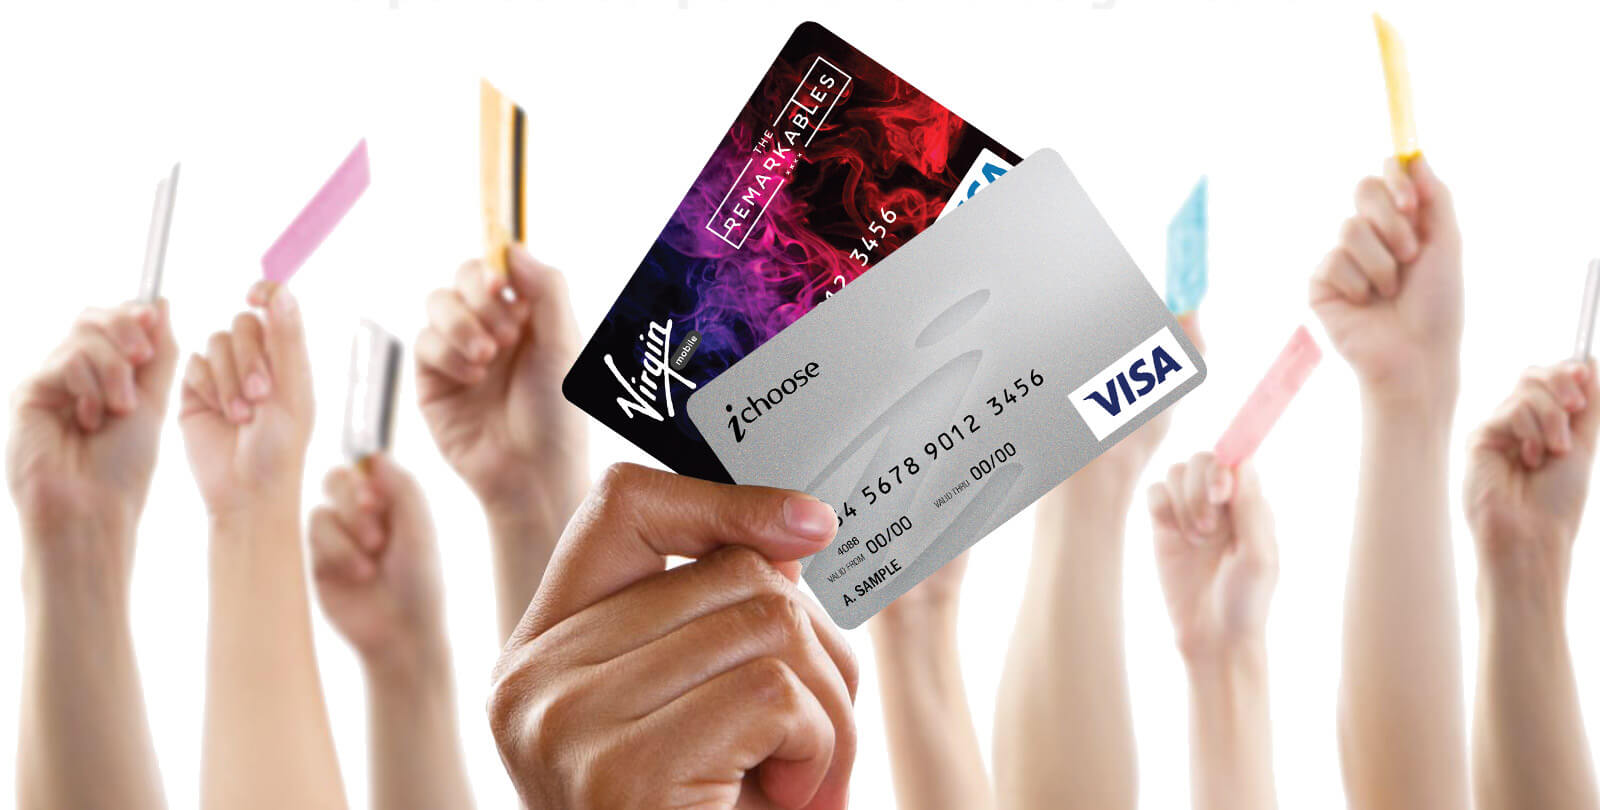 iChoose VISA prepaid branded and non-branded cards